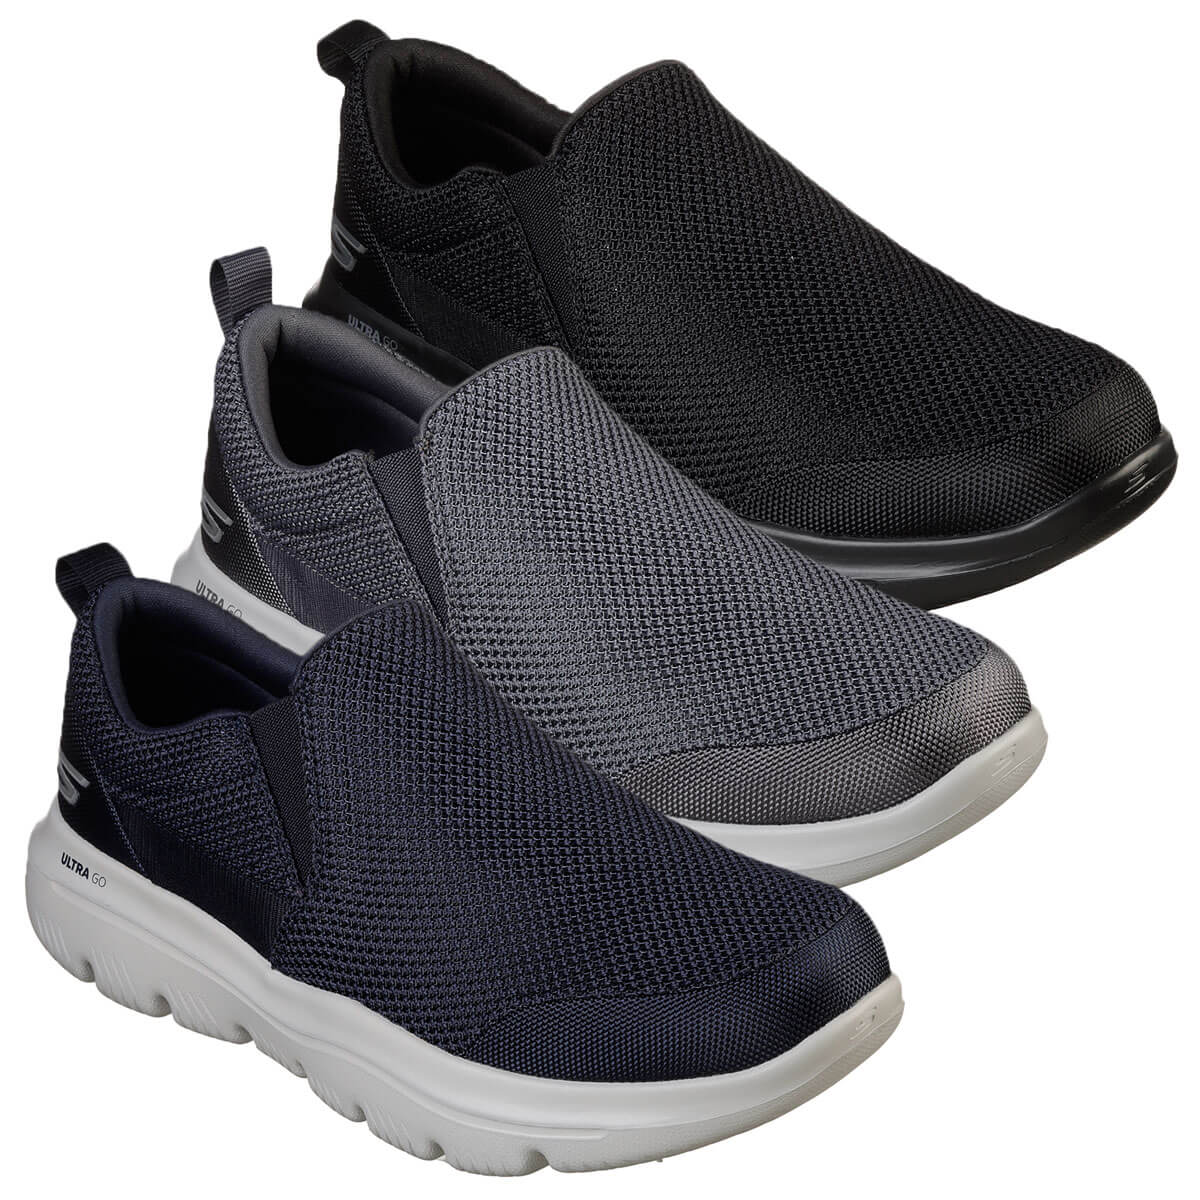 skechers on the go men's shoes